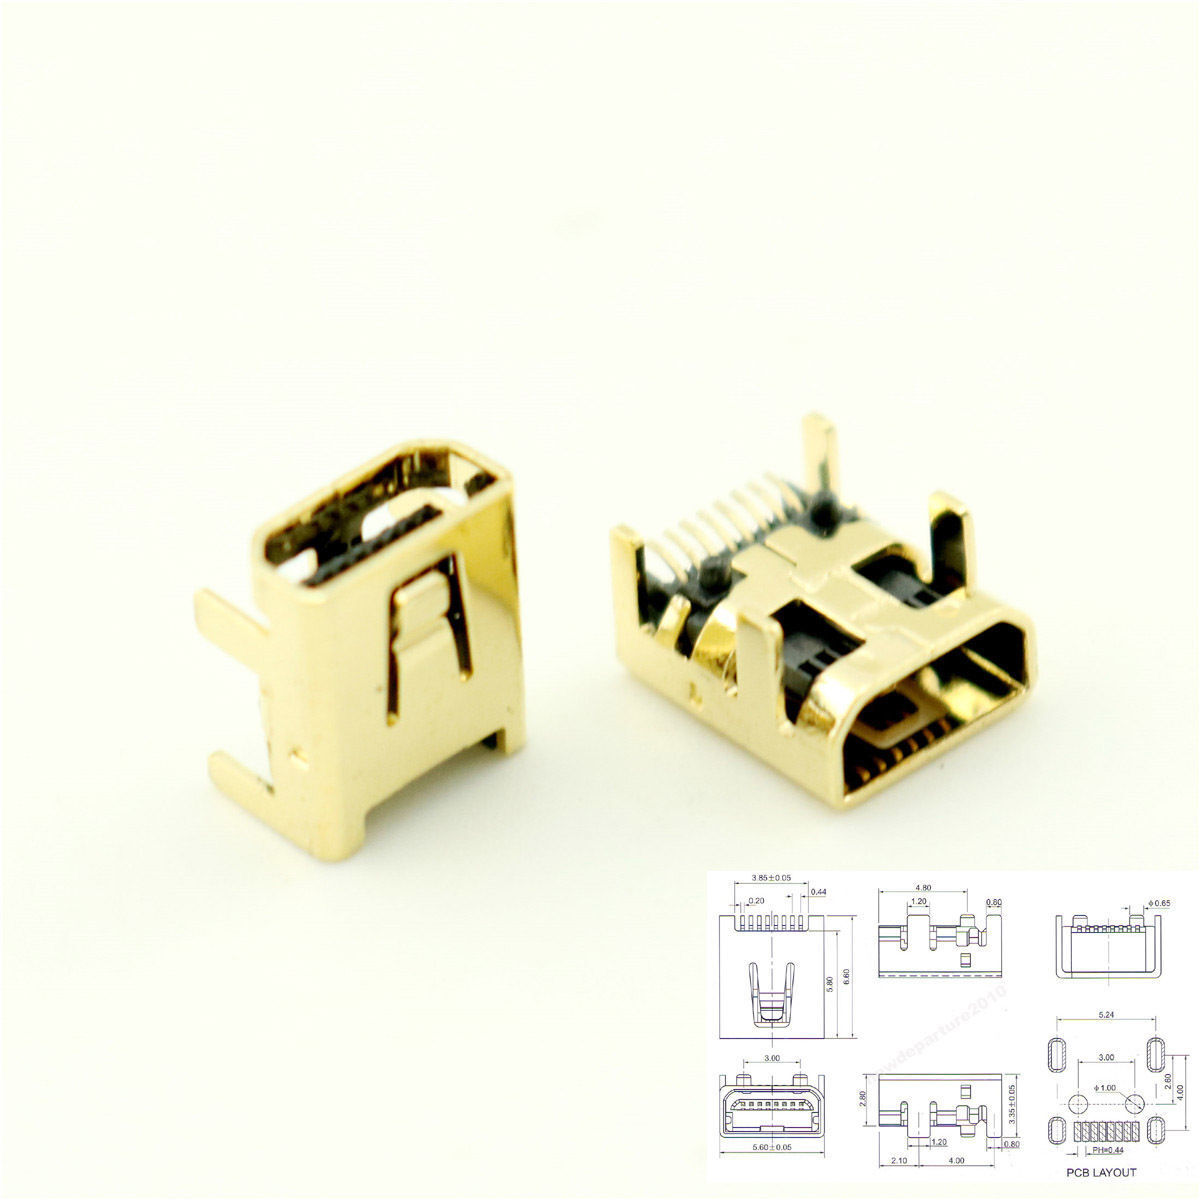 Details about 10Pcs Gold Plated Mini USB 8 Pin Female Jack PCB SMT Socket  Connector For DIY